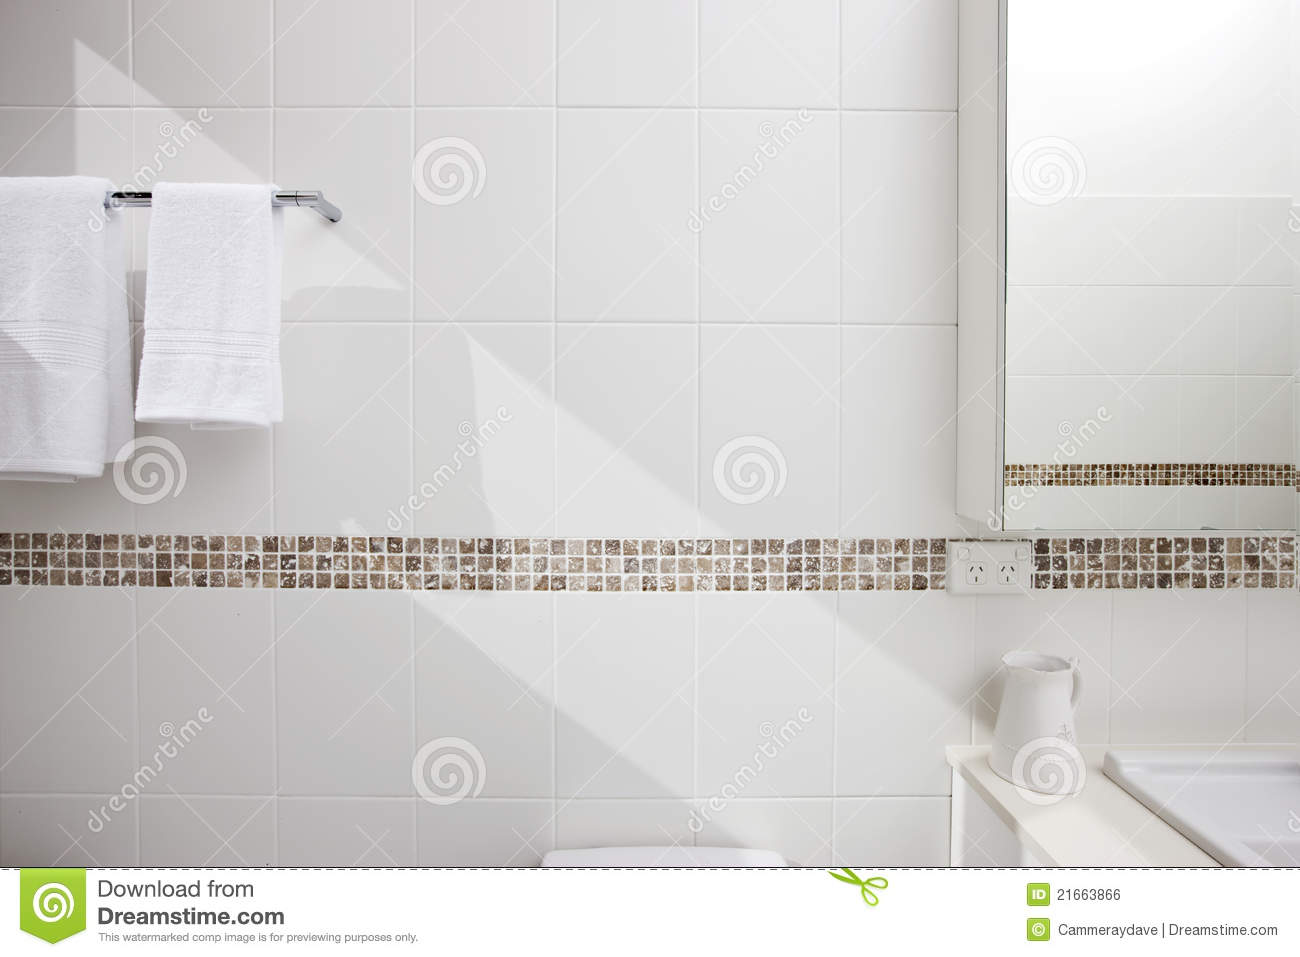 Bathroom White Tiles Background Stock Photo 21663866 - Megapixl